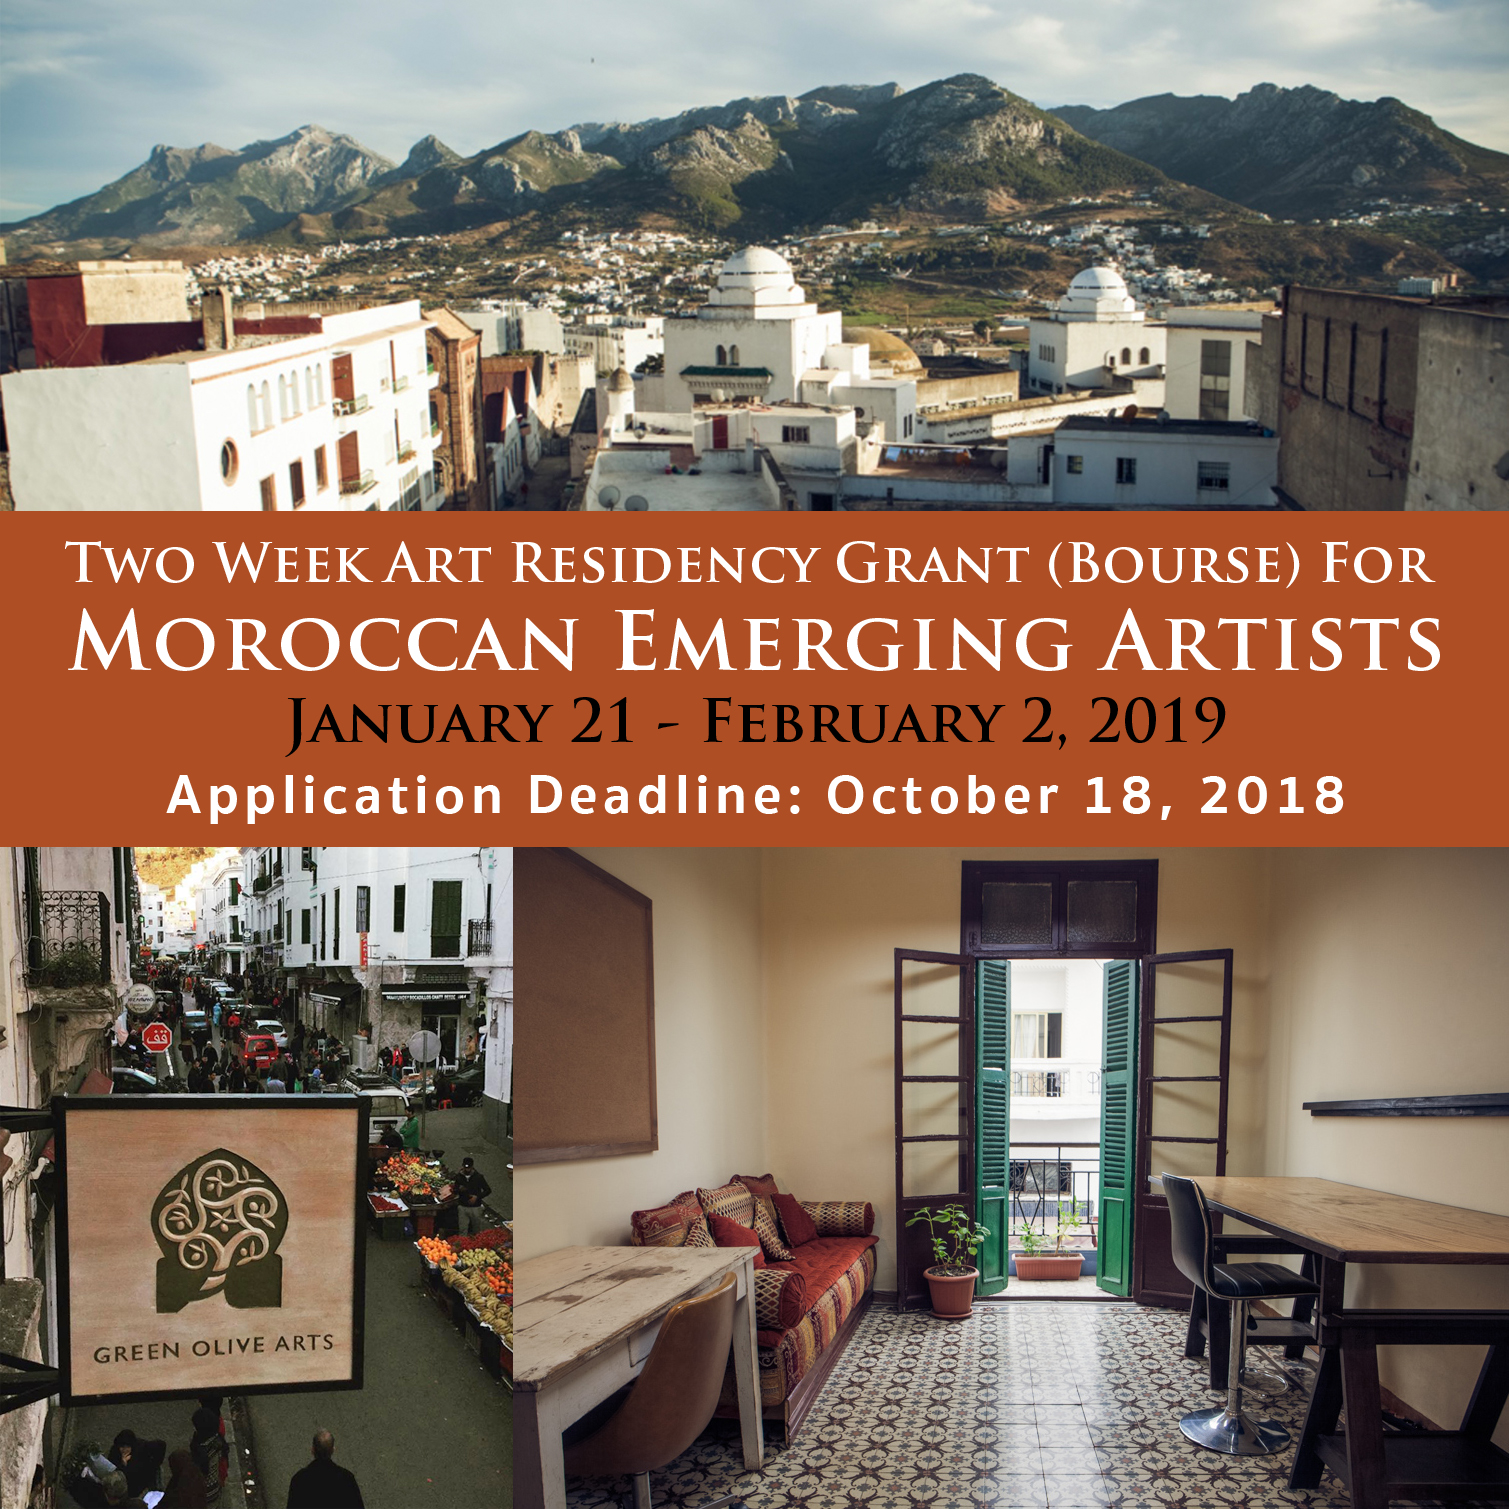 Residency Grant for Moroccan Emerging Artists - Green Olive Arts